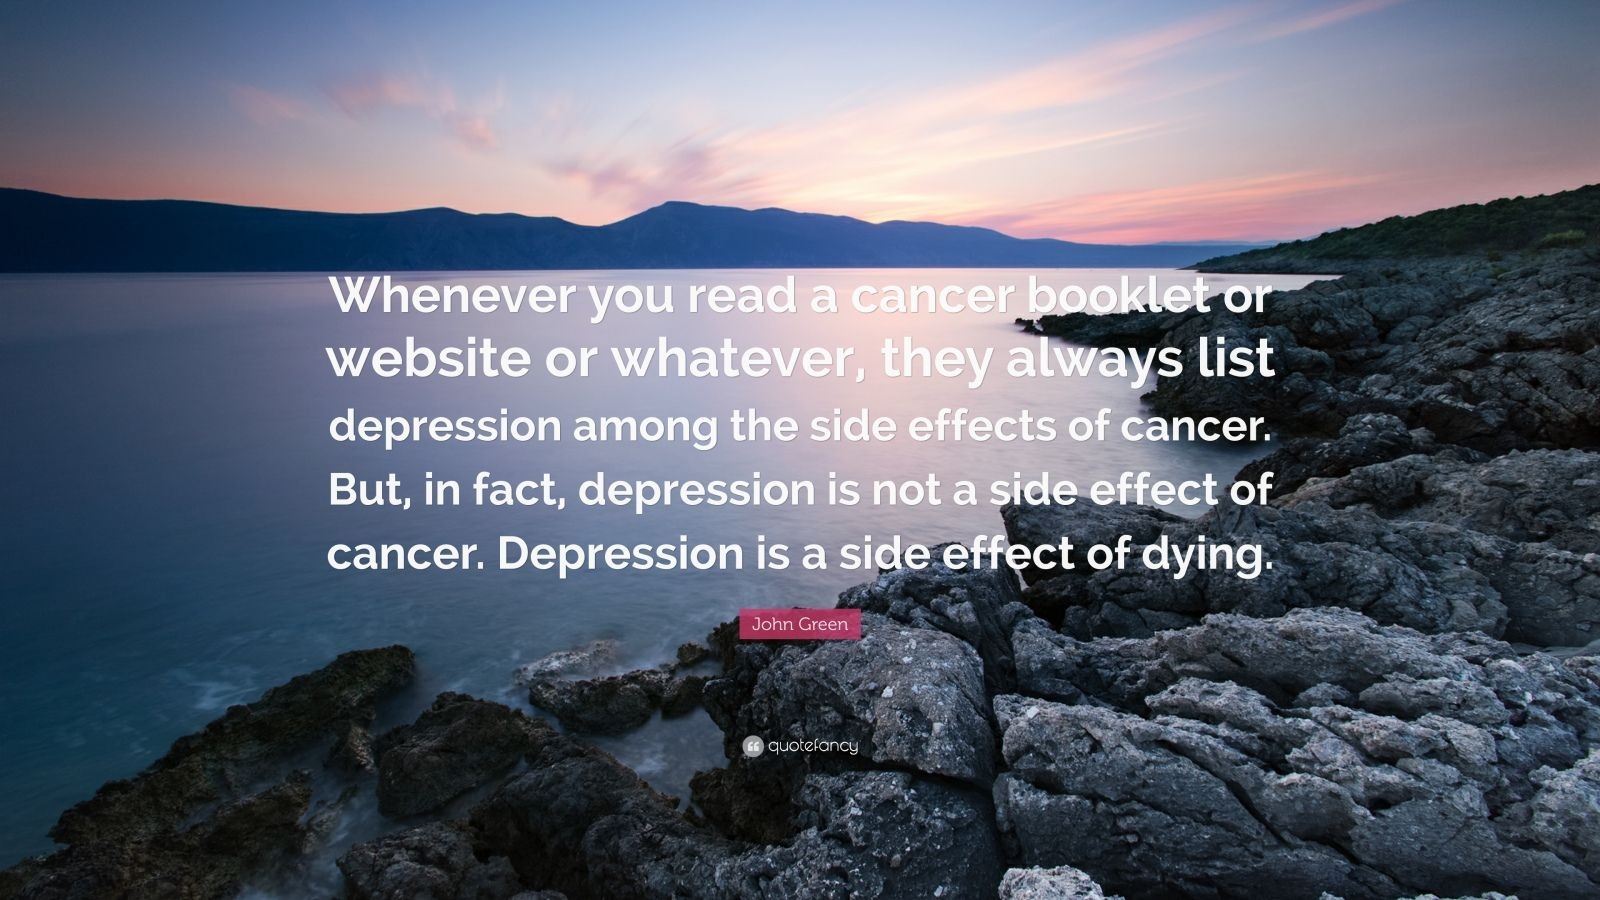 "John Green Quote: ""Whenever you read a cancer booklet or website or whatever, they always list depression among the side effects of cancer. But, in fact, depression is not a side effect of cancer. Depression is a side effect of dying."""